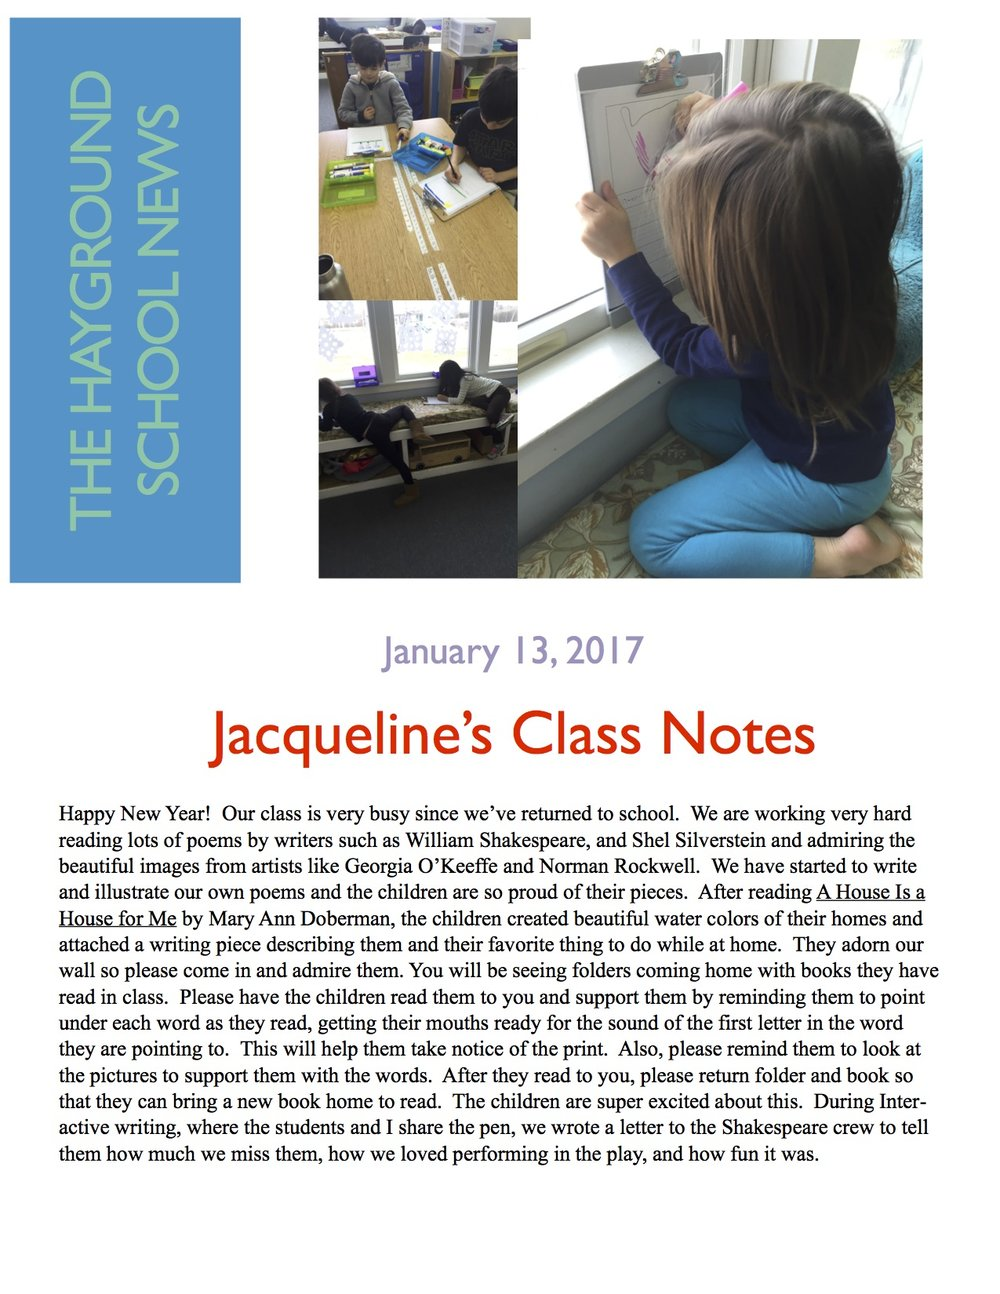 Jacqueline Class Notes 1-13-17 copy.jpg